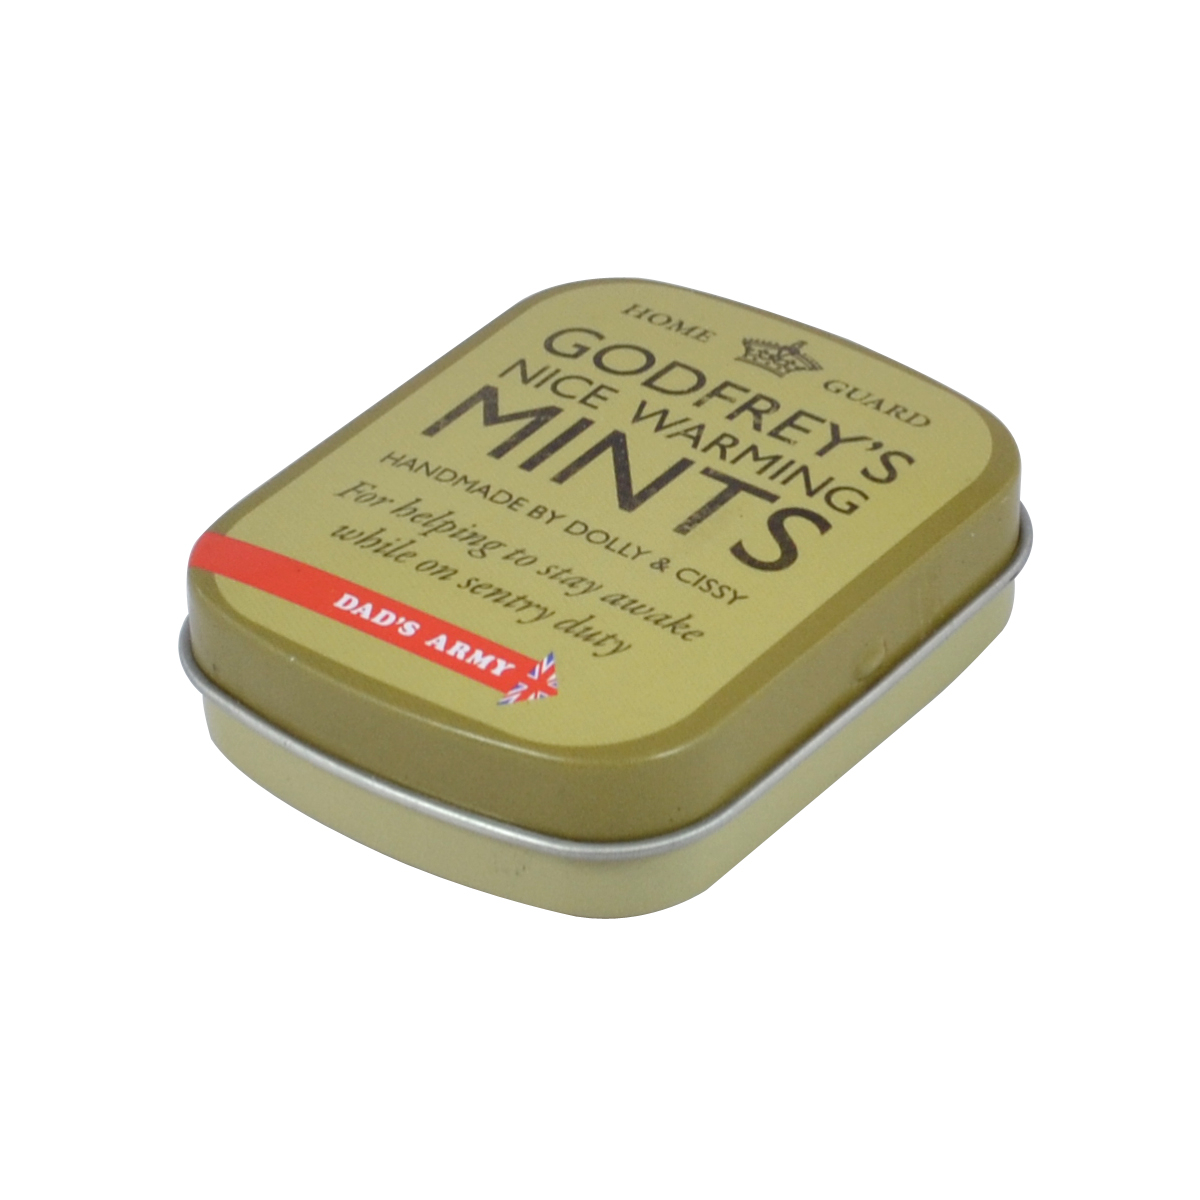 dads army mint tins, dads army wholesale products